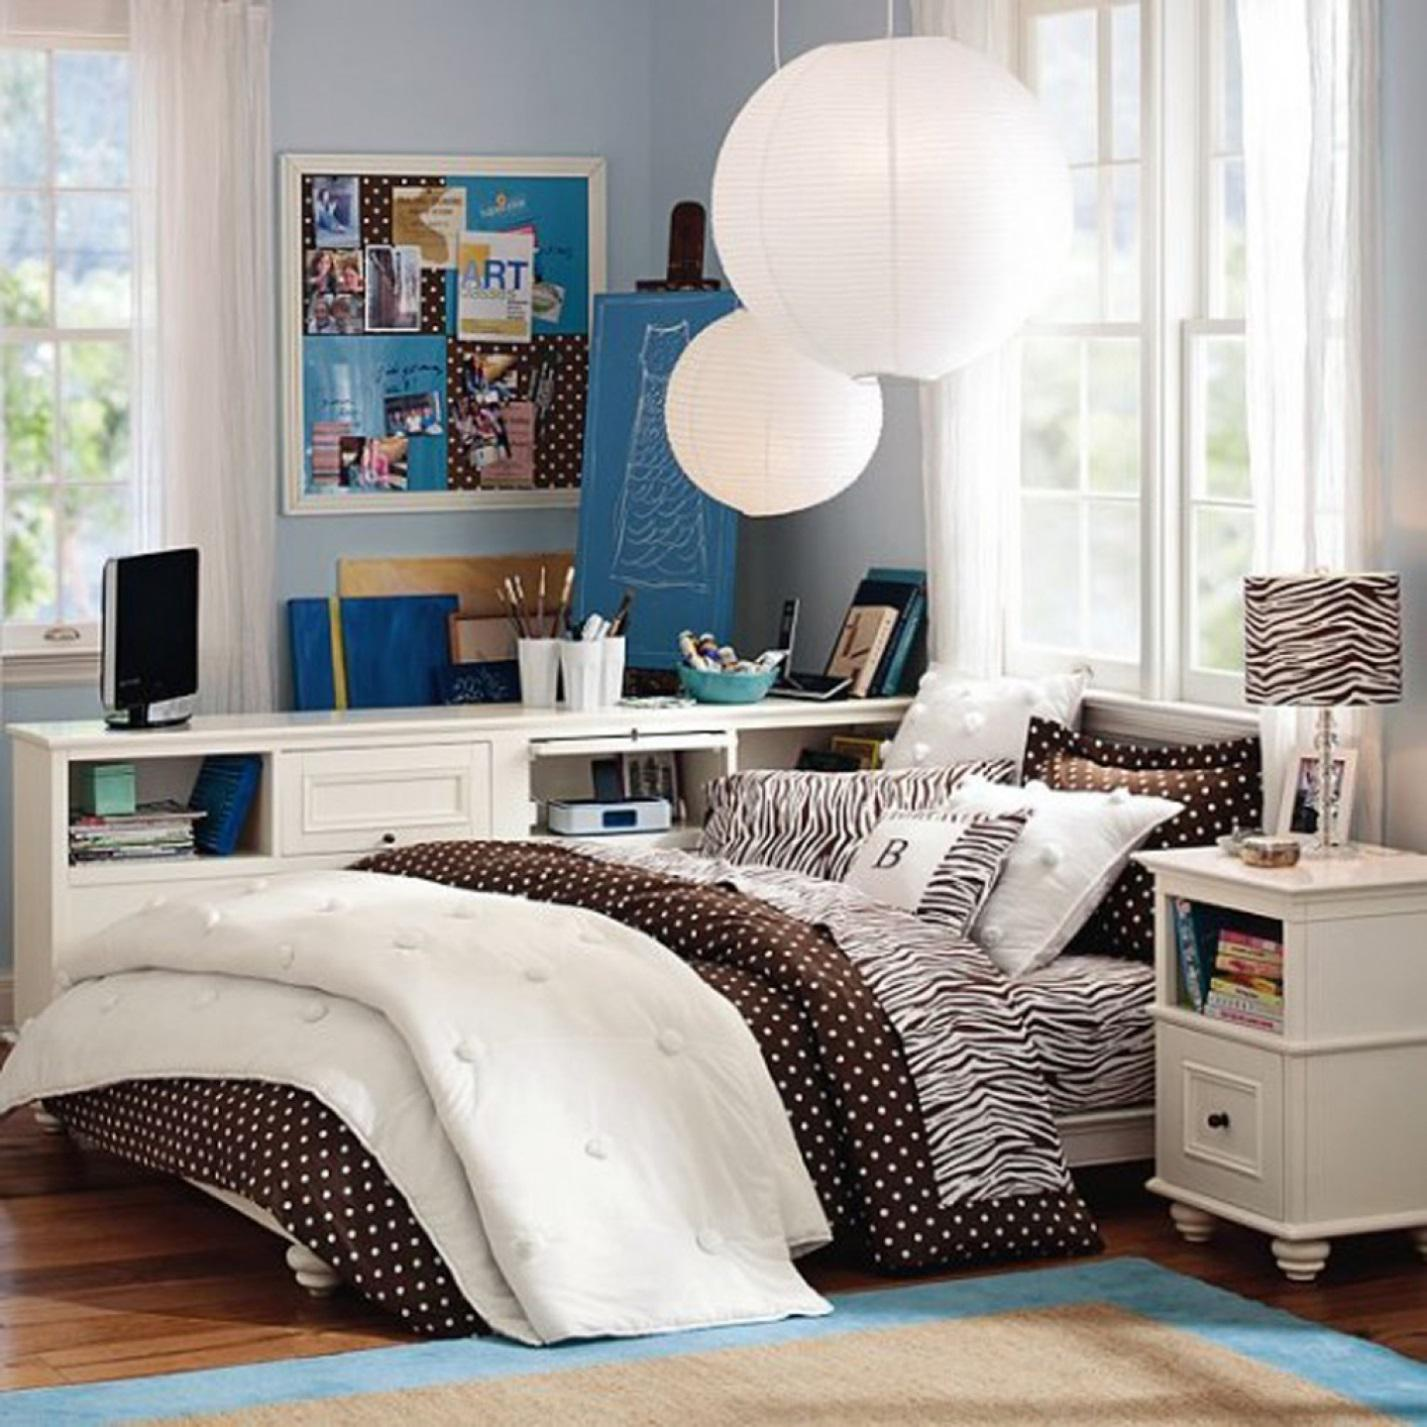 Designing teen-centered bedrooms